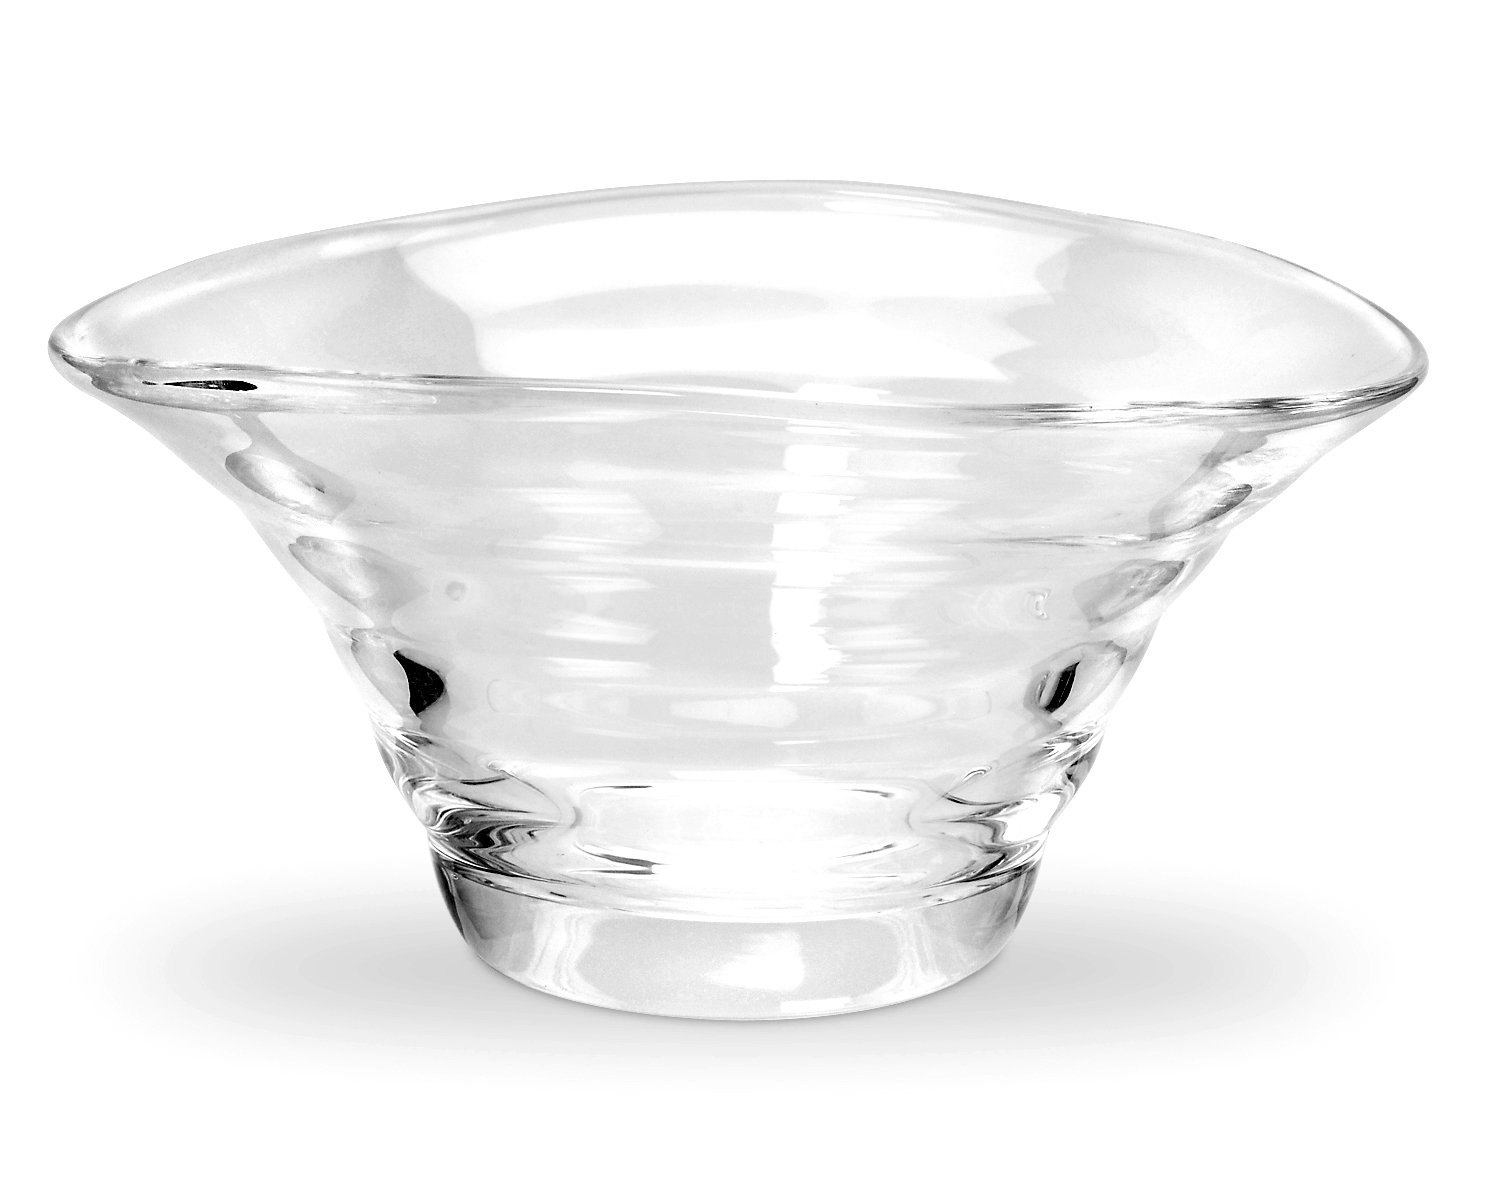 Medium Glass Bowl Portmerion 749151494008